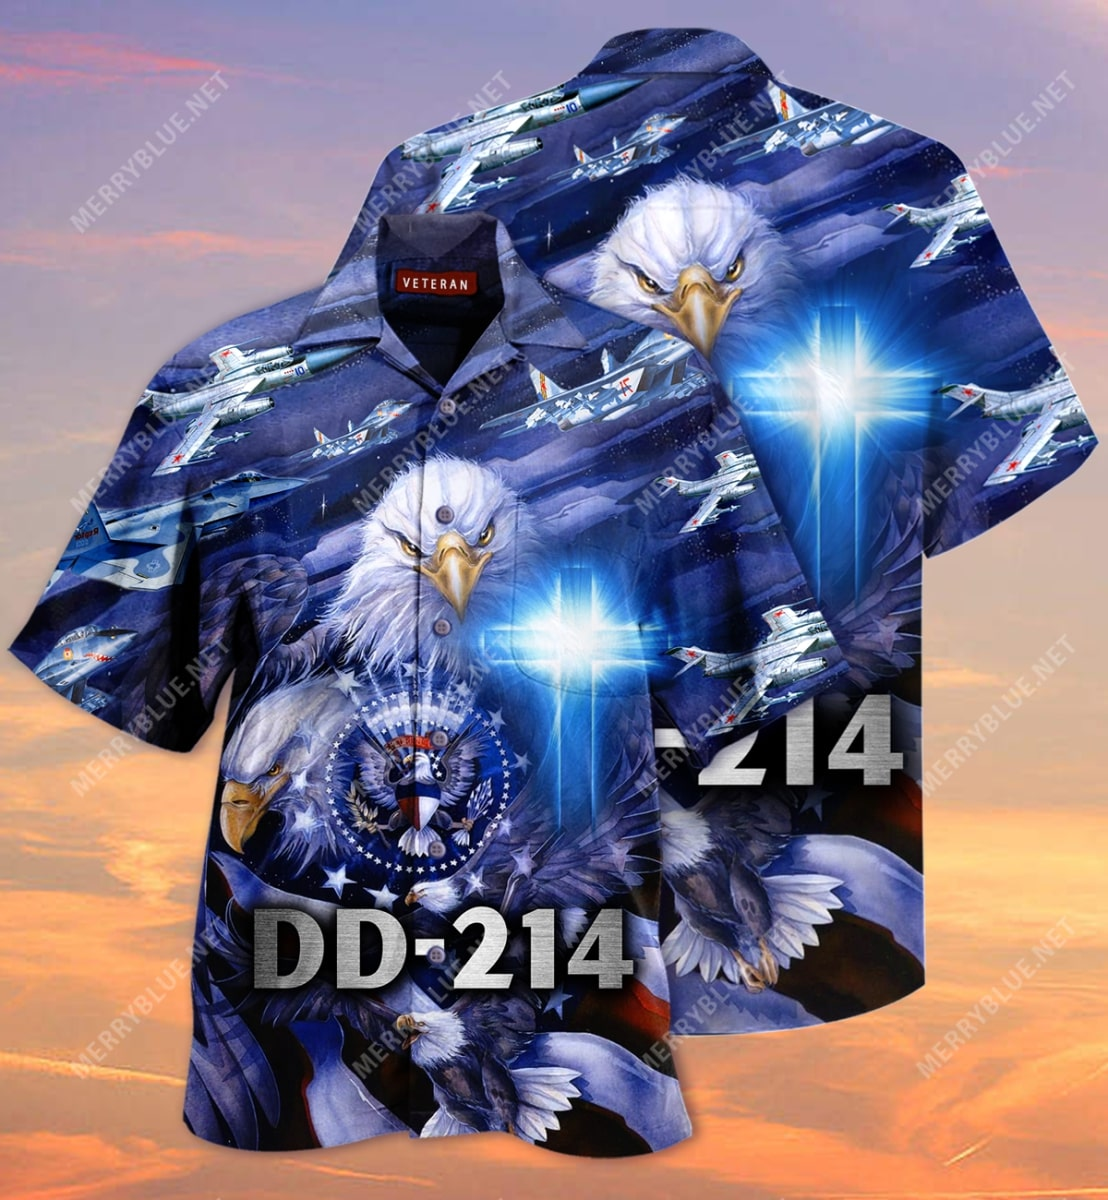 united state veteran on the sky all over printed hawaiian shirt 3